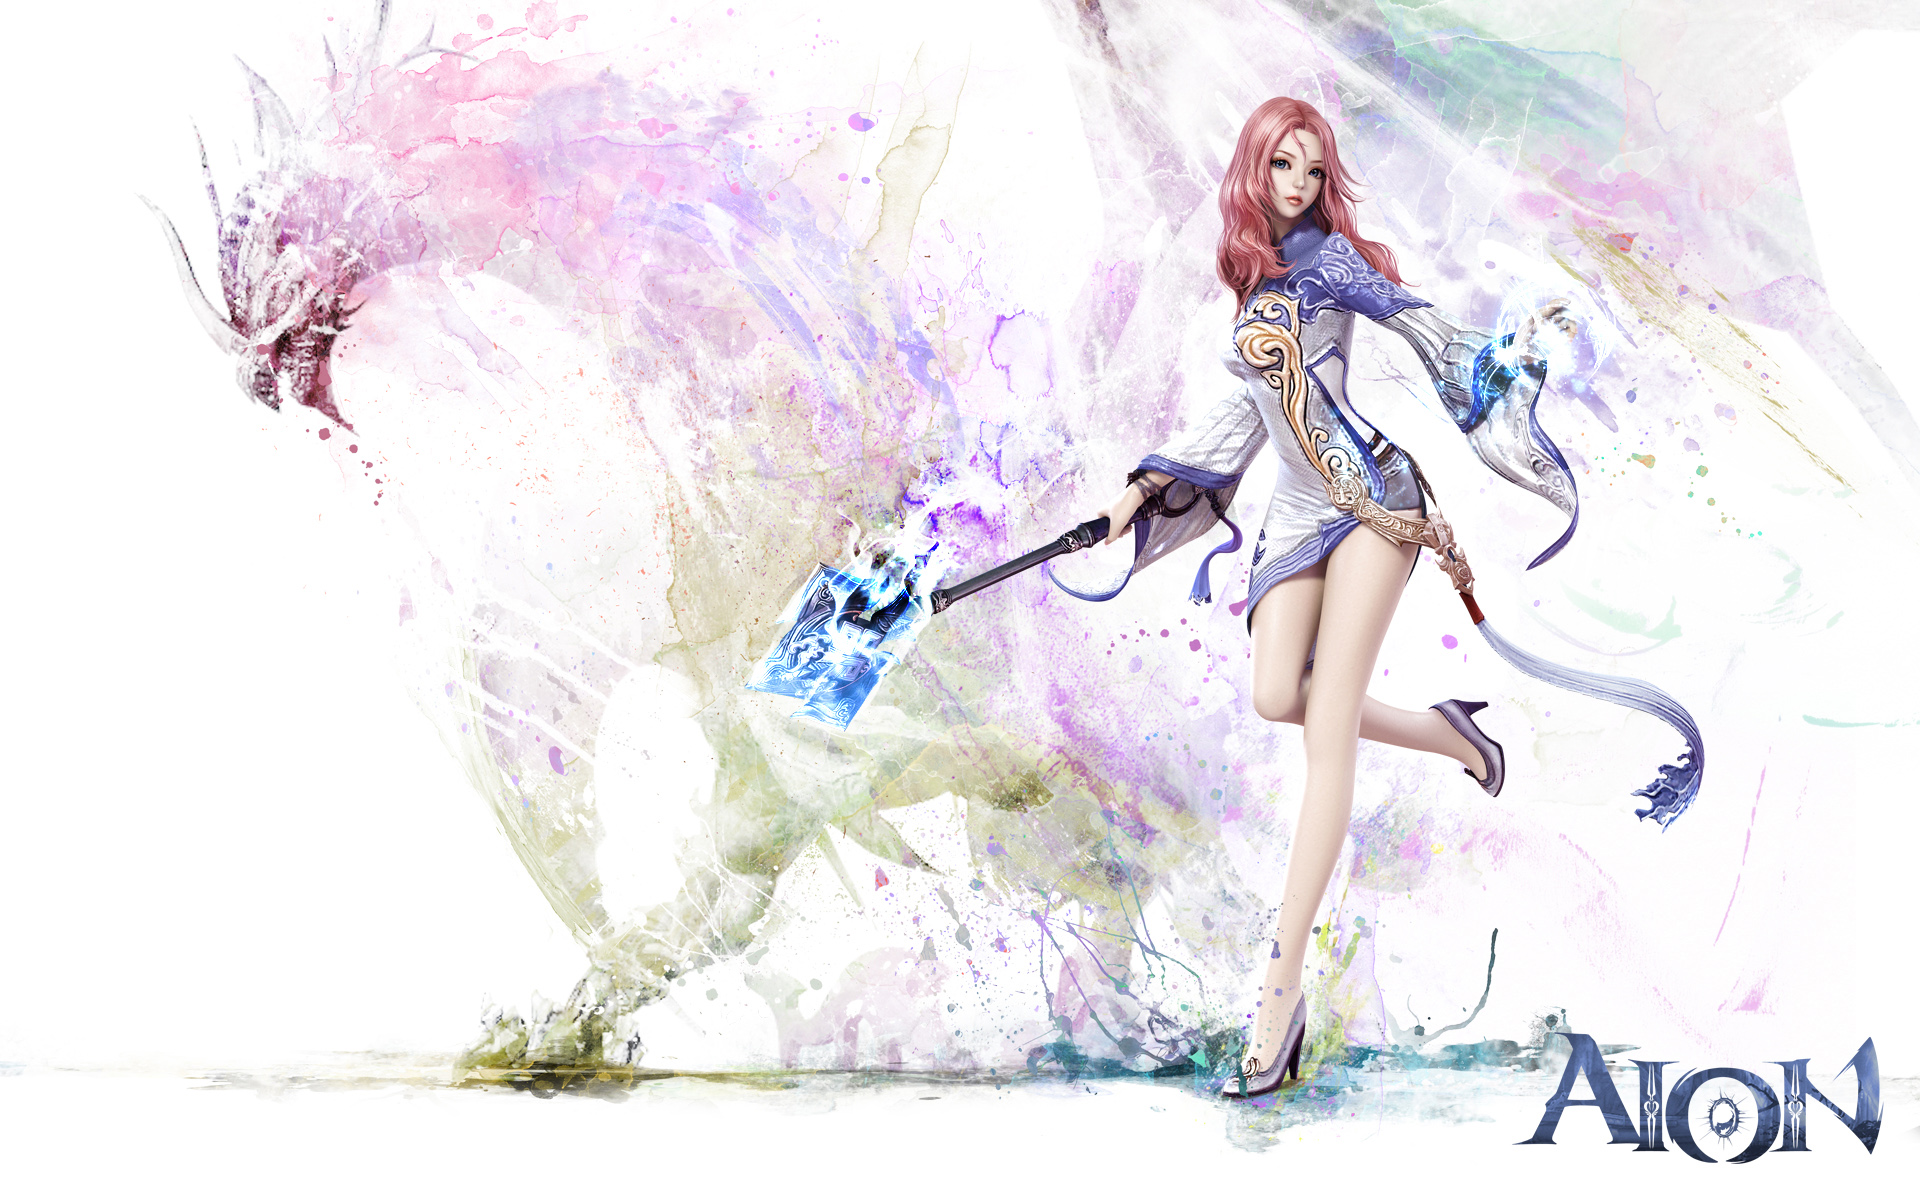 Aion Game Girl Wallpapers HD Wallpapers 1920x1200